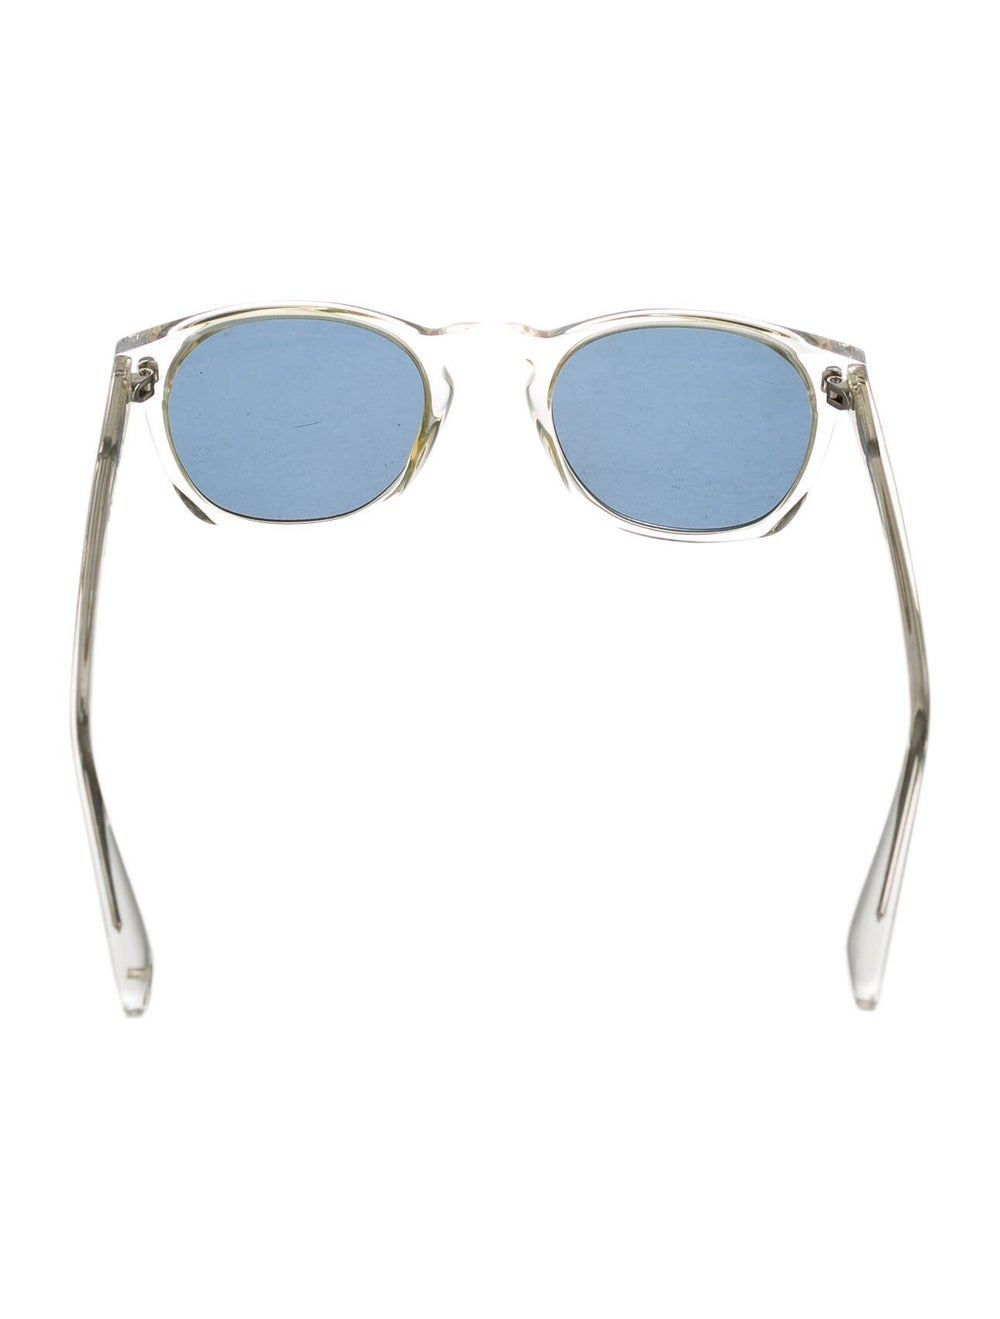 Warby Parker Topper Sunglasses Clear - image 3